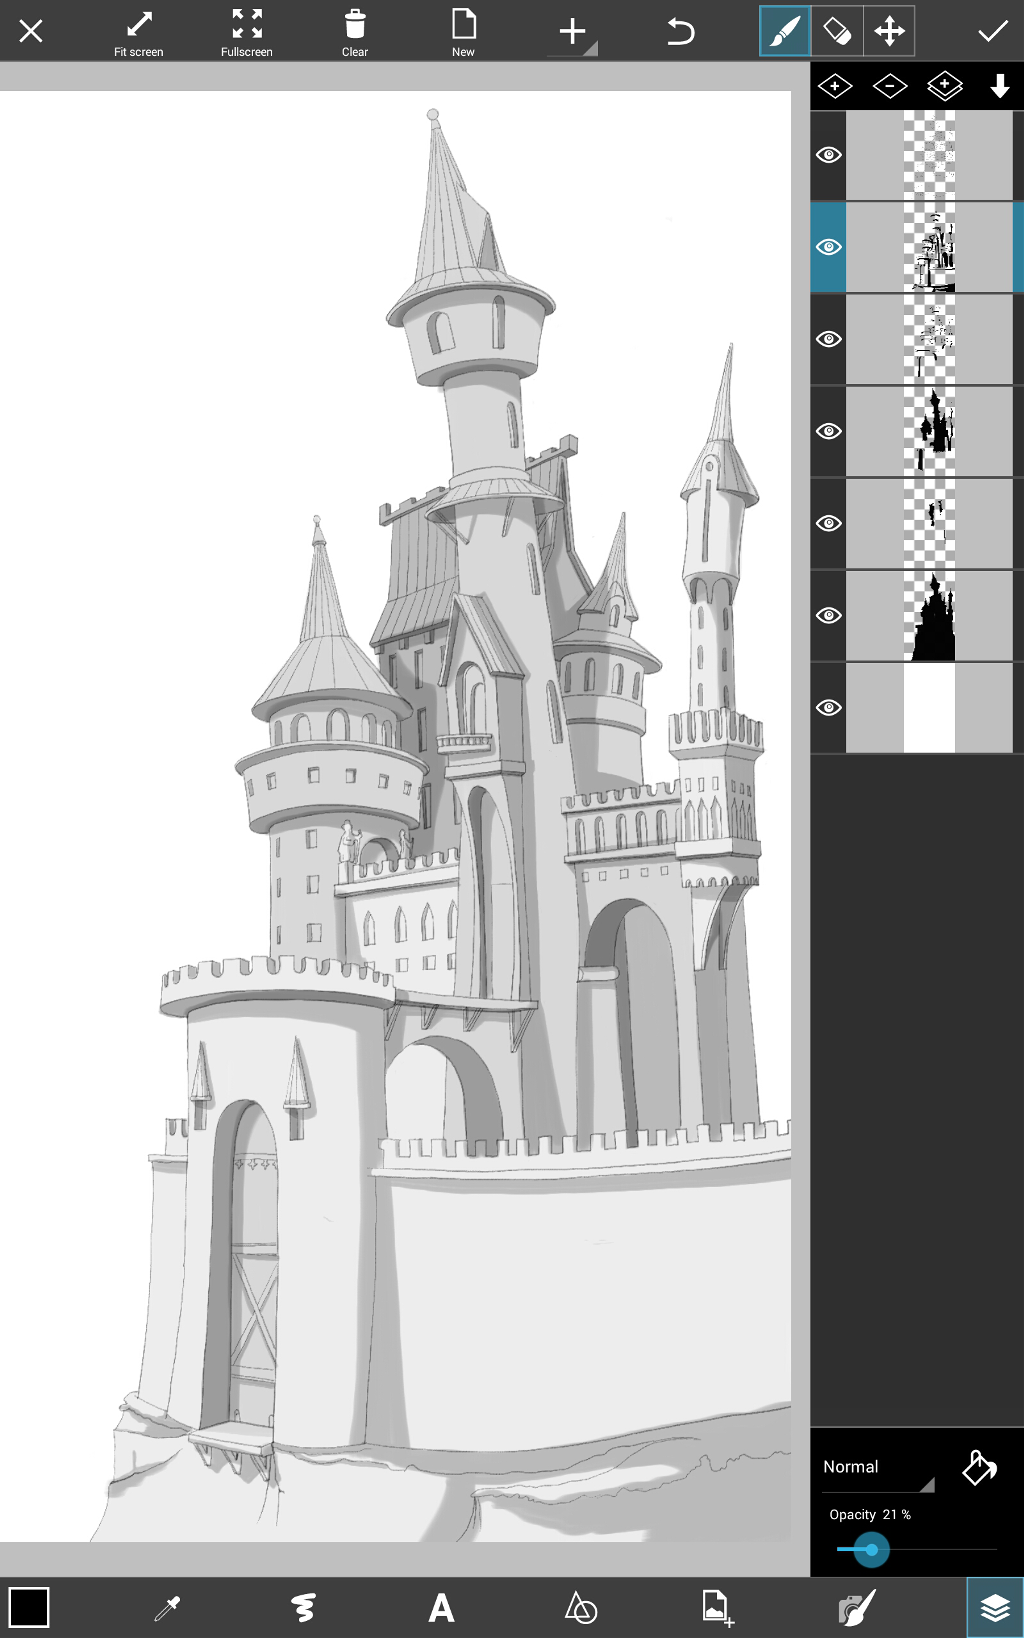 a castle drawing how to draw a castle using picsart drawing tools create drawing castle a